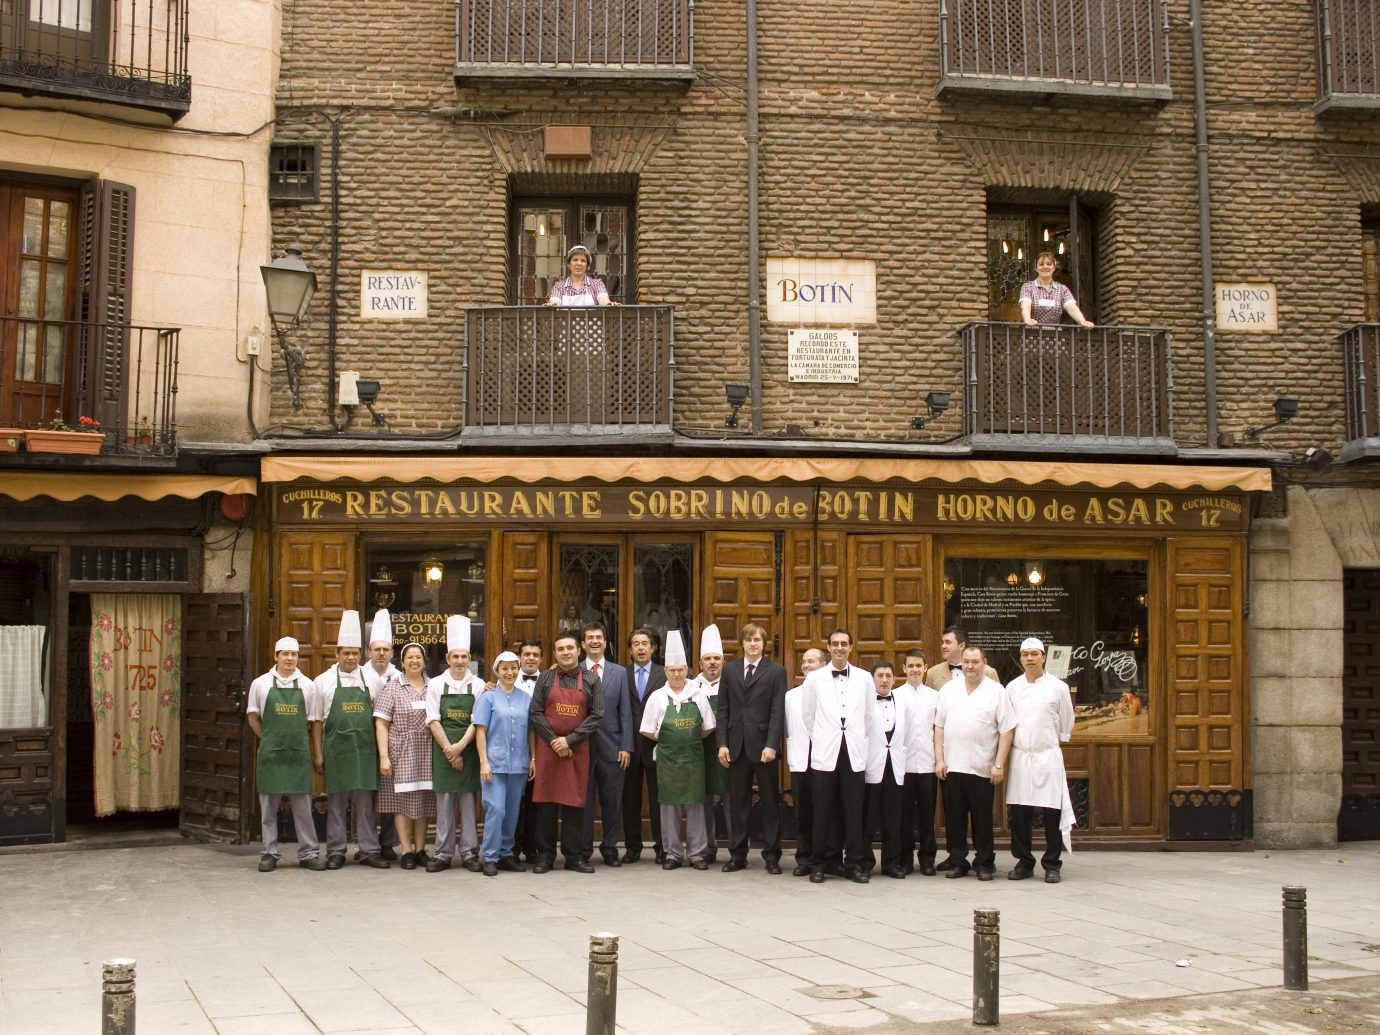 exterior of Botin restaurant